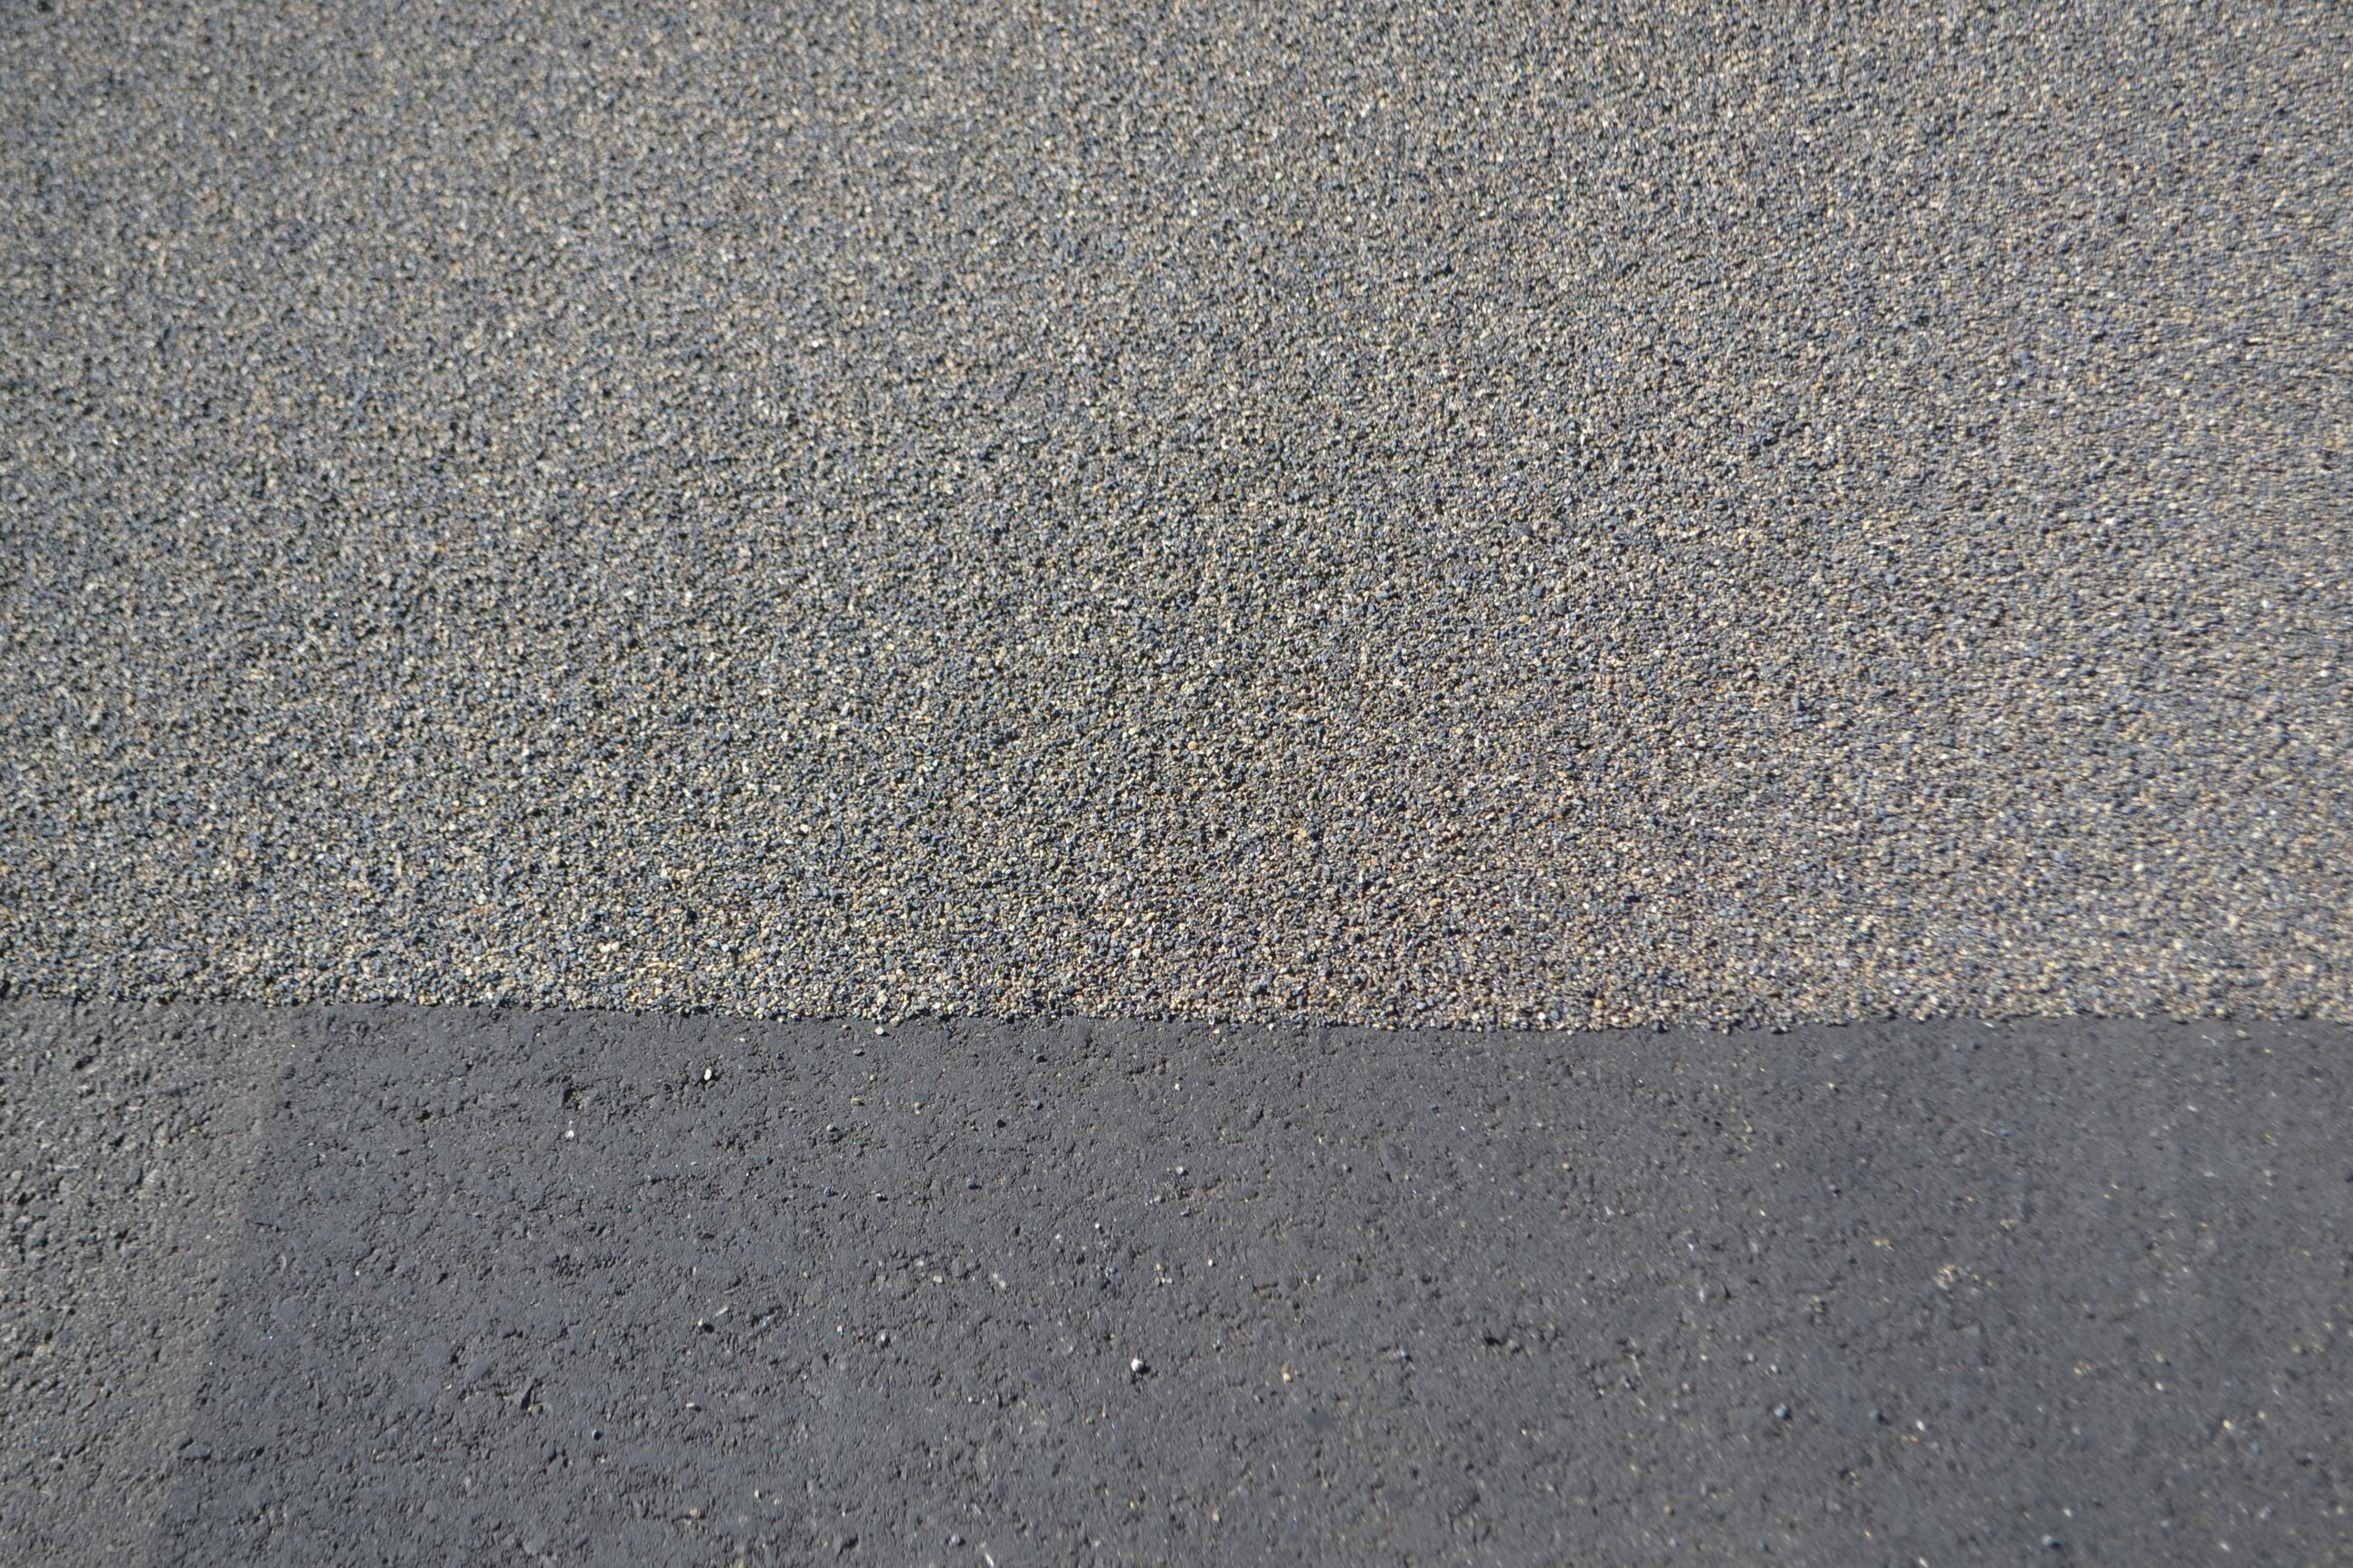 Clarkston Road after the high friction surface control process is complete, photo from 2016